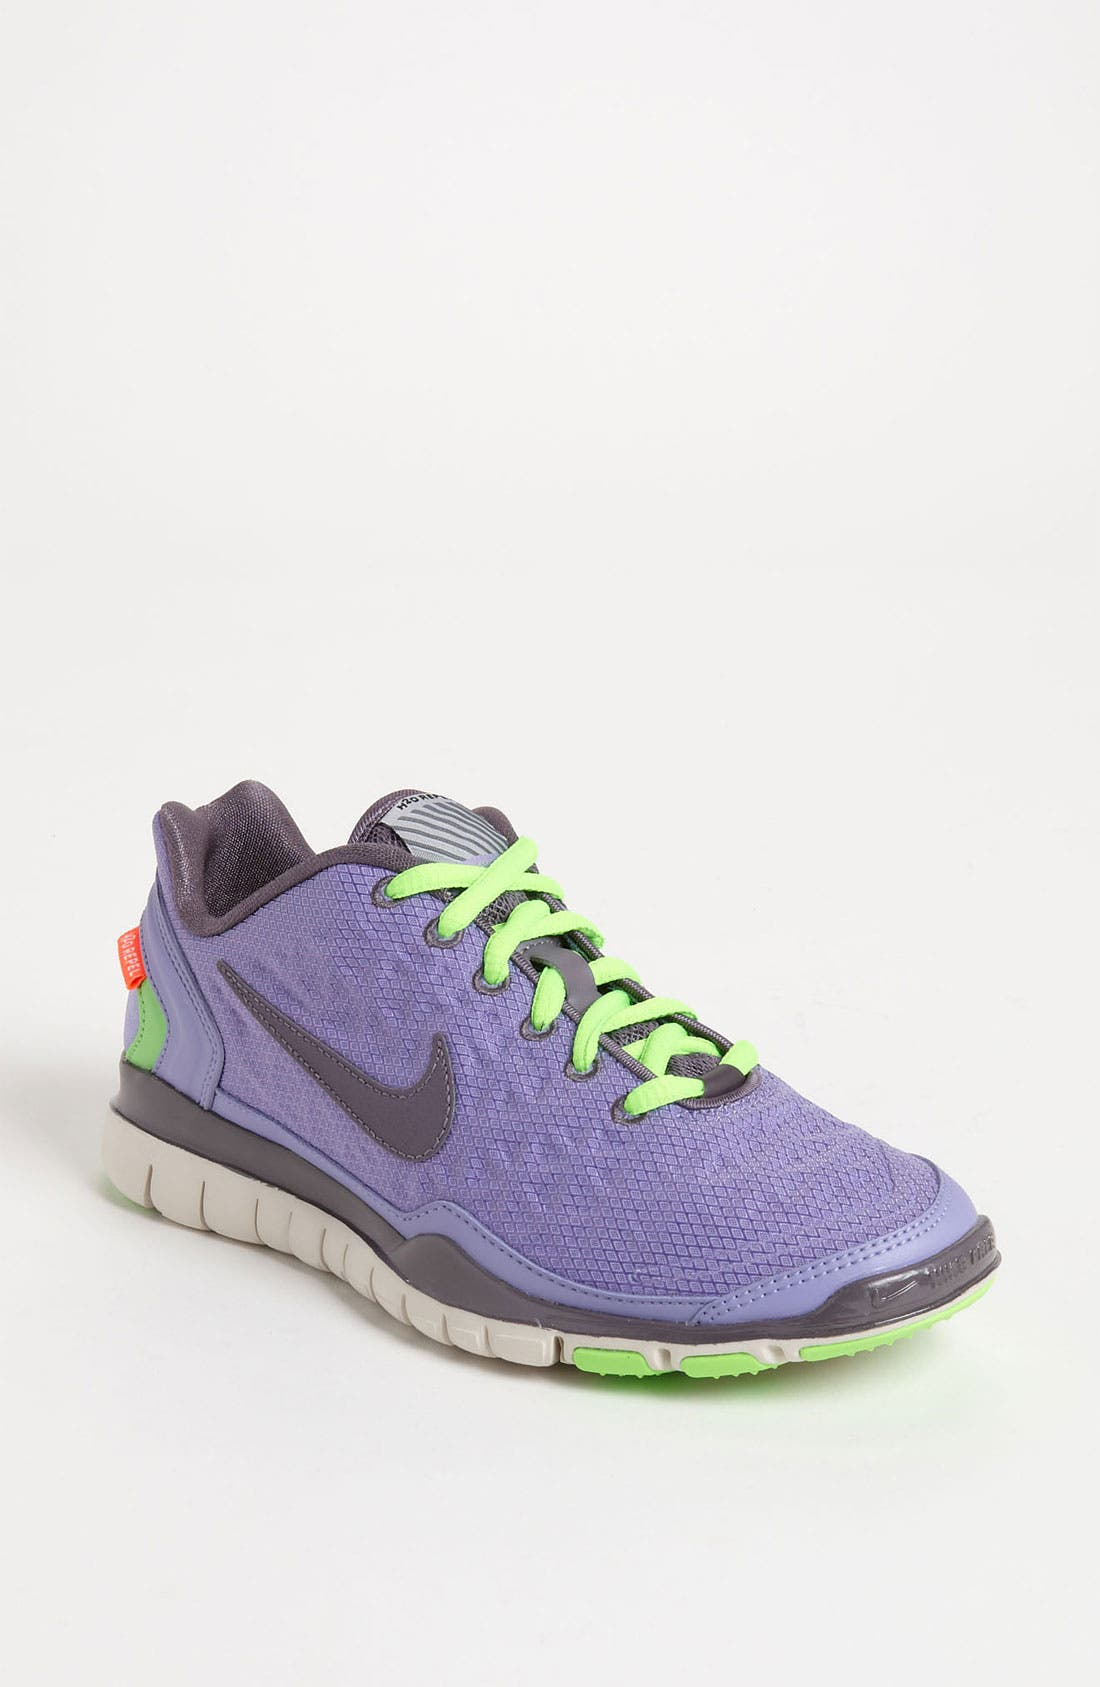 Alternate Image 1 Selected - Nike 'Free TR Fit 2 Shield' Training Shoe (Women)